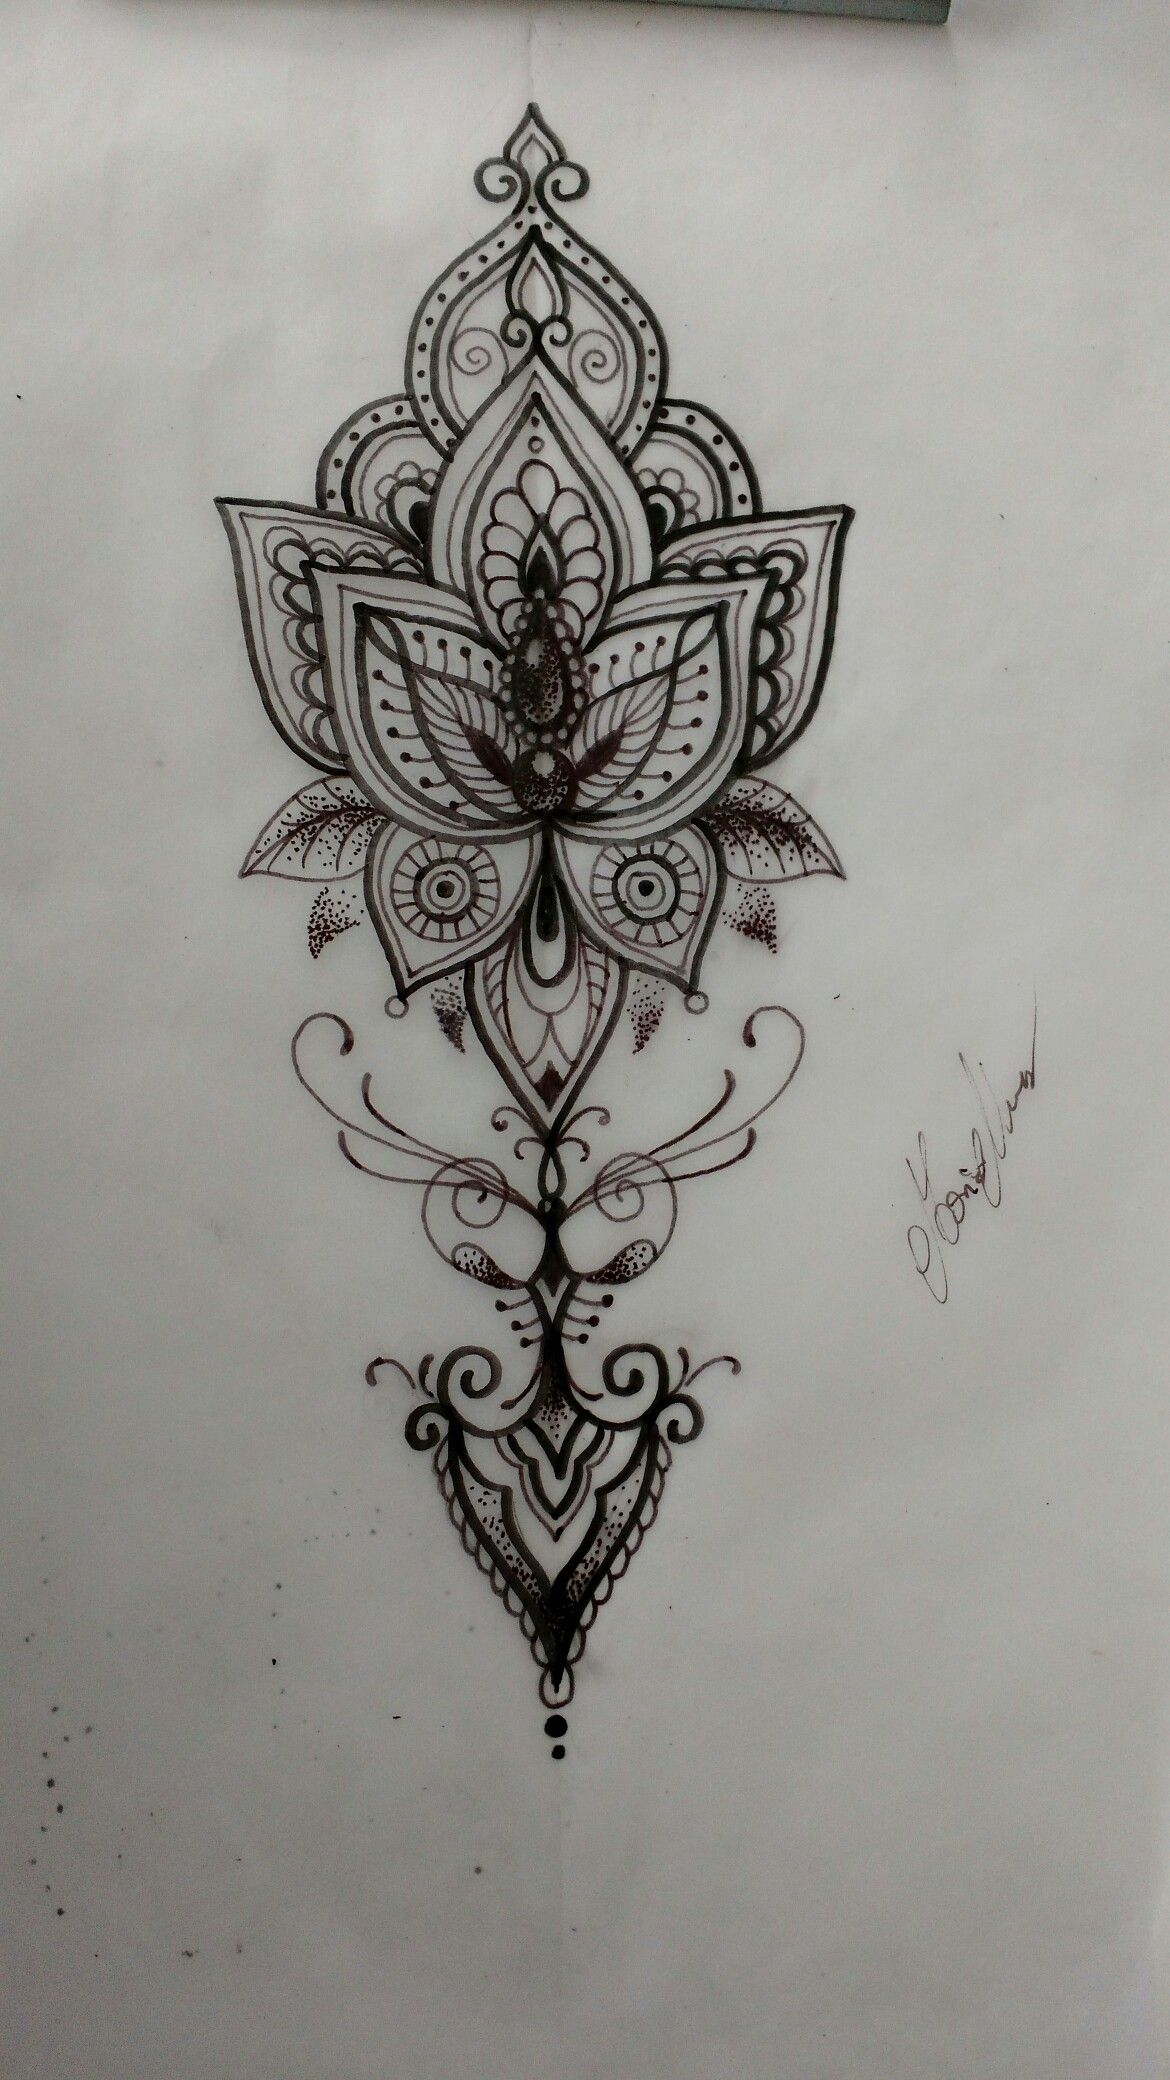 425d04d477c8a Calf tattoo idead | Tattoo Ideas | Calf tattoo, Mandala tattoo, Tattoos